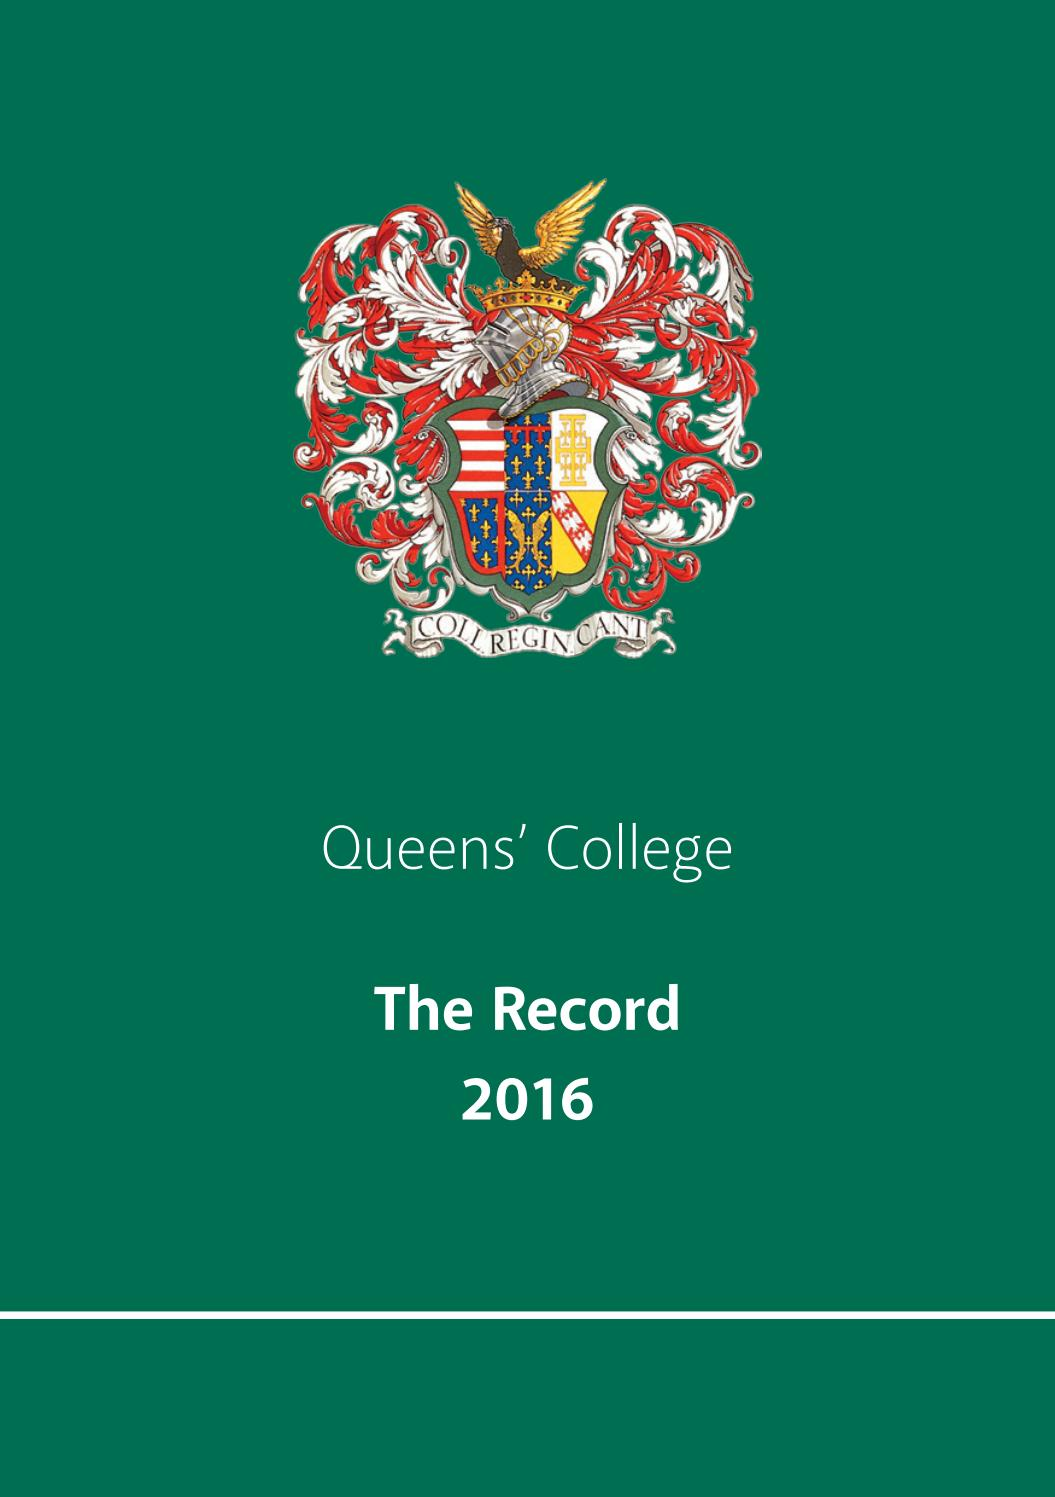 Queens\' College - The Record 2016 by Ciconi Ltd - issuu